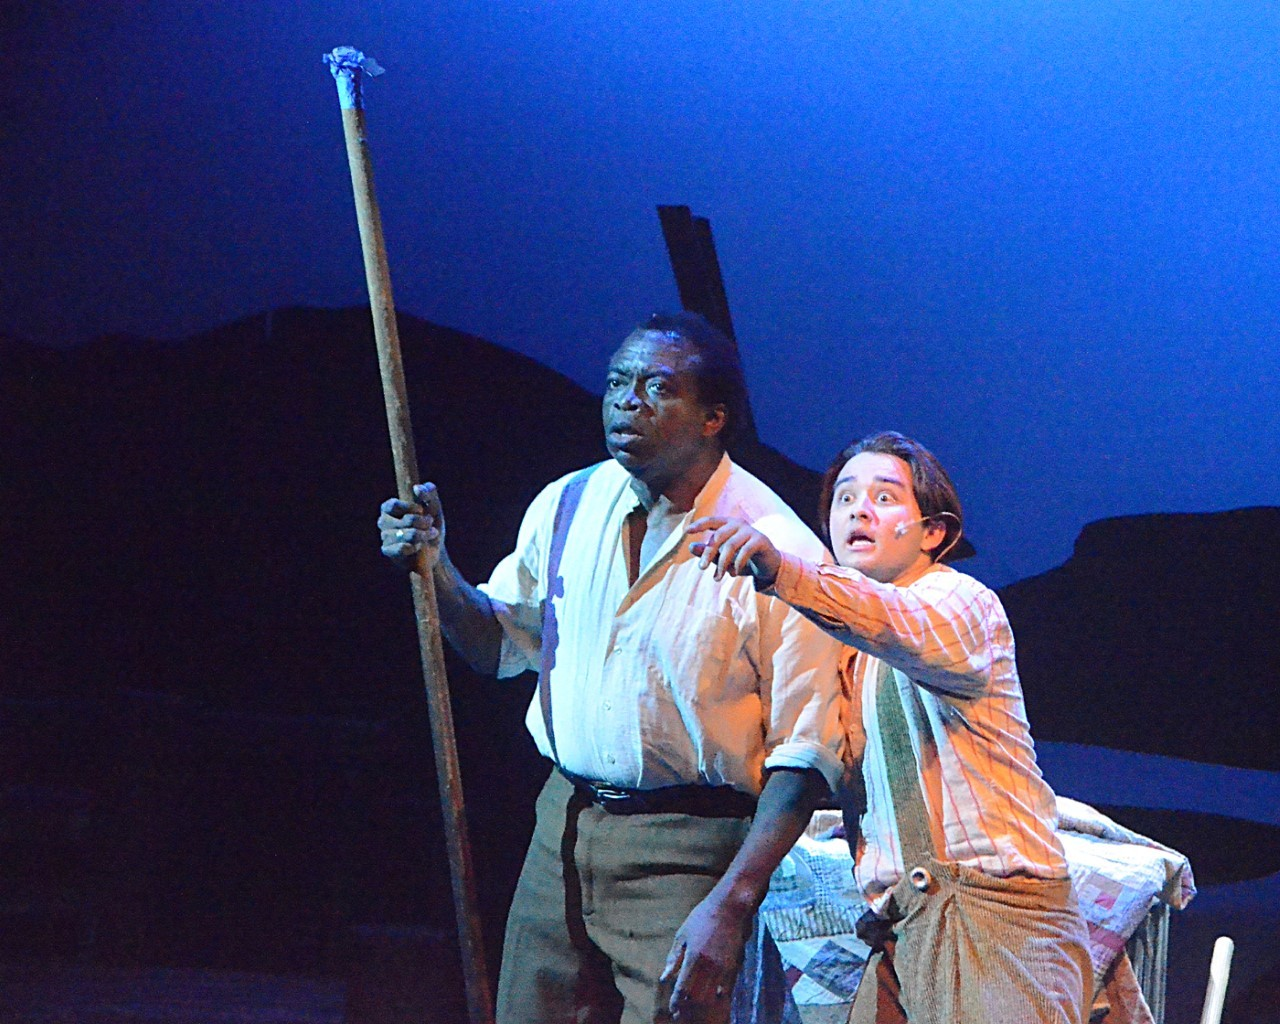 BWW Review: BIG RIVER Delights at PALM CANYON THEATRE